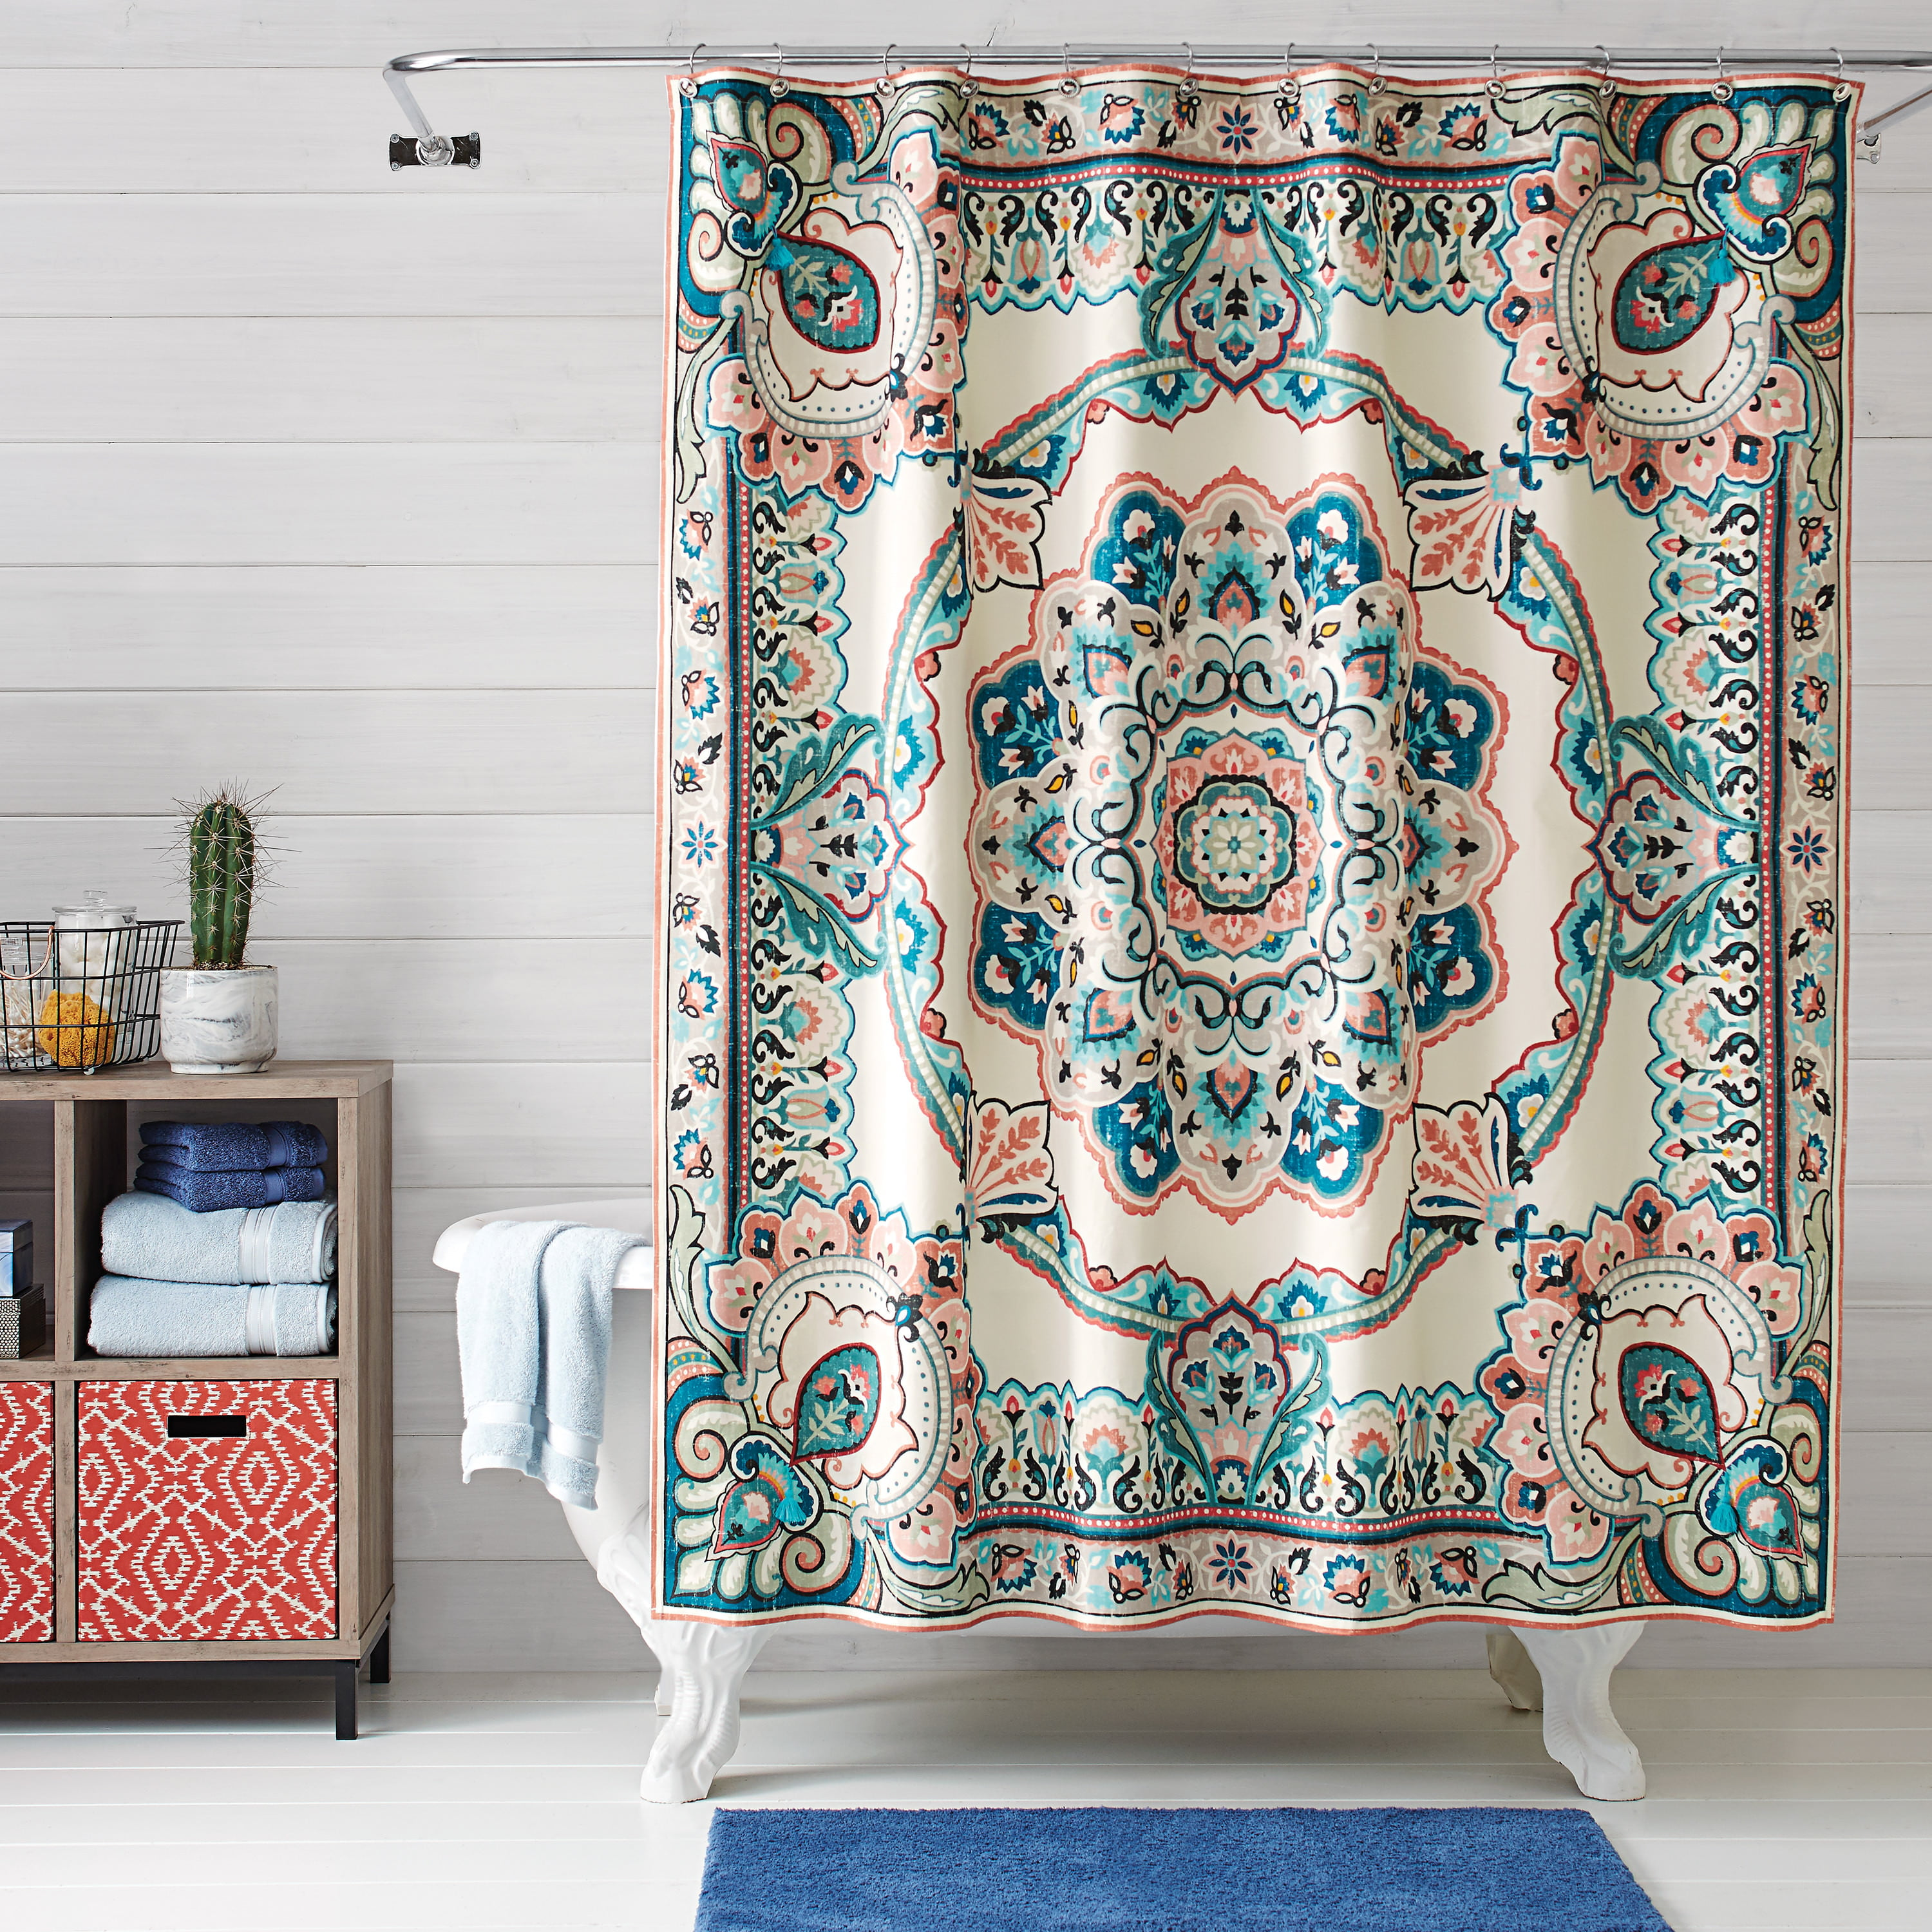 Better homes and gardens scarf medallion shower curtain - Better homes and gardens shower curtains ...